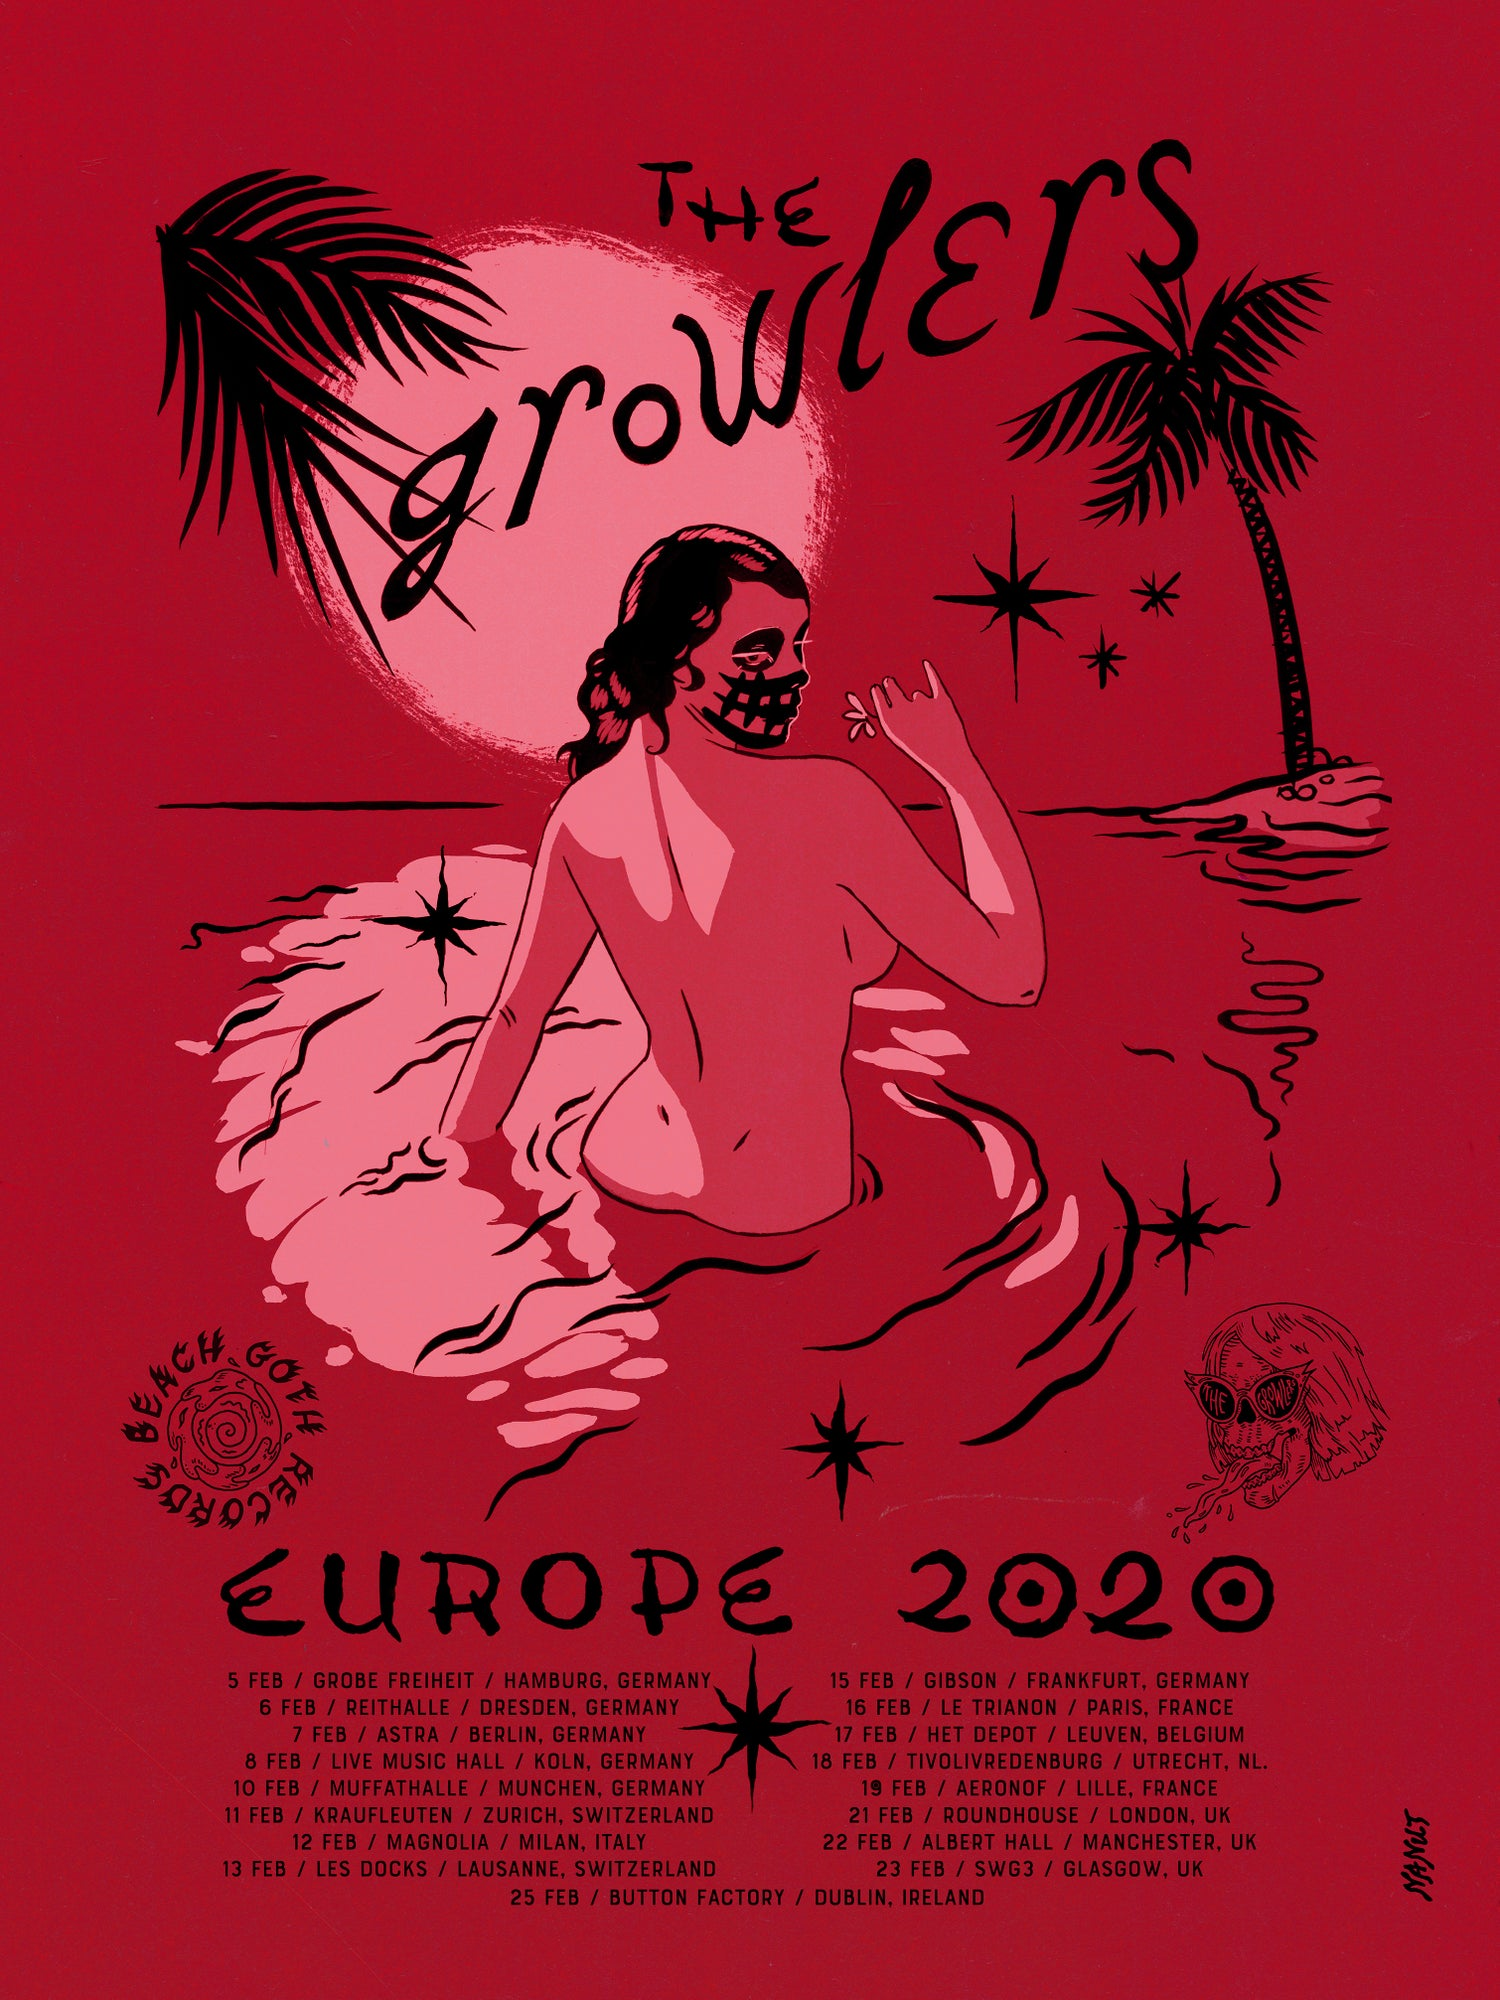 Image of The Growlers' Europe 2020 Tour Poster - Vermilion